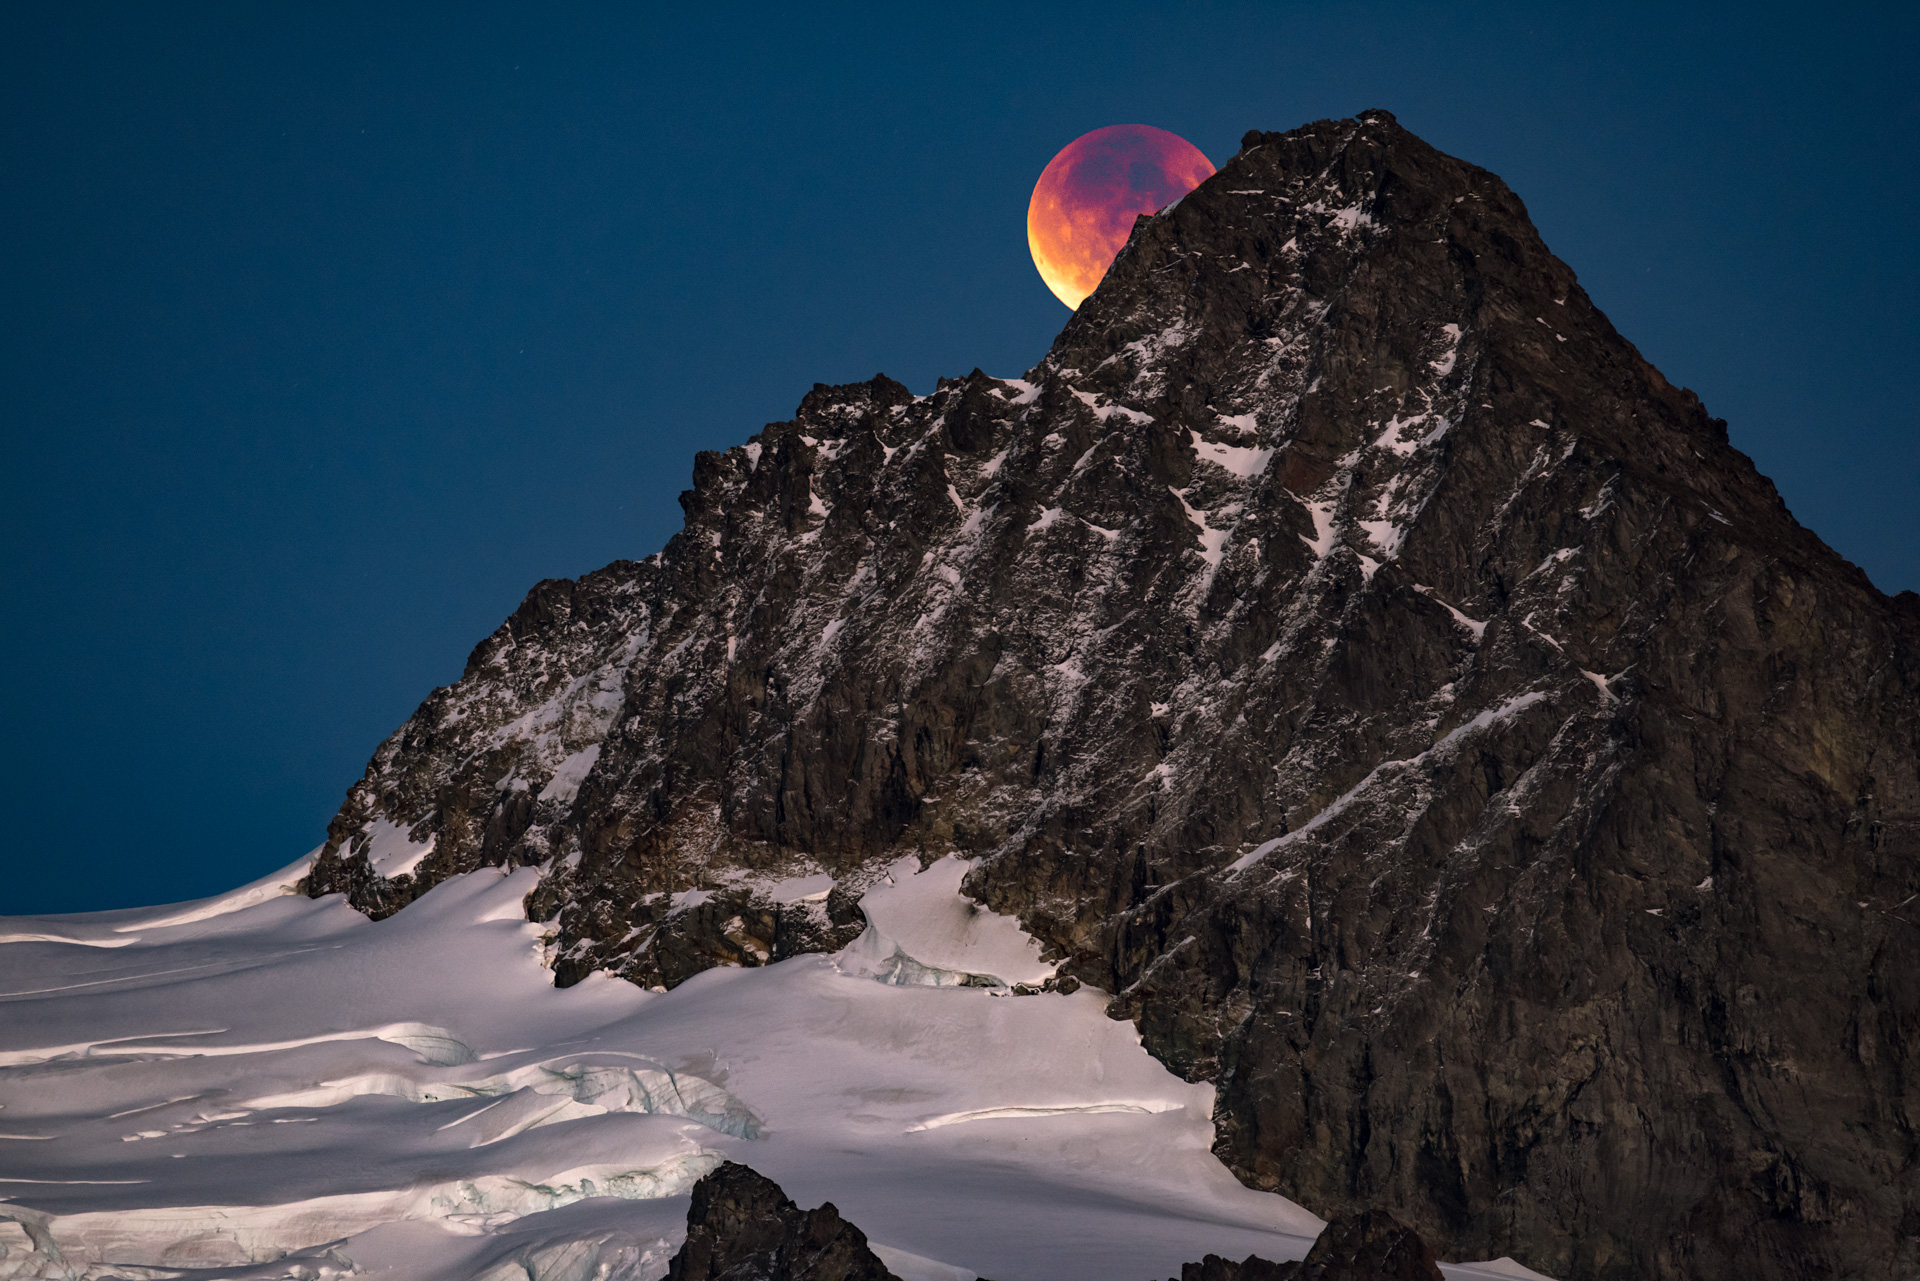 Blood Moon over Mount Shuksan  |  [First Place in Photography | Kenmore Camera Award | SOLD]   Super Moon / Harvest Moon / Blood Moon / Lunar Eclipse / September 27, 2015 | Mount Baker-Snoqualmie National Forest, Washington  16x24 | high gloss metal print with hand made shadow mount  (click image to enlarge)